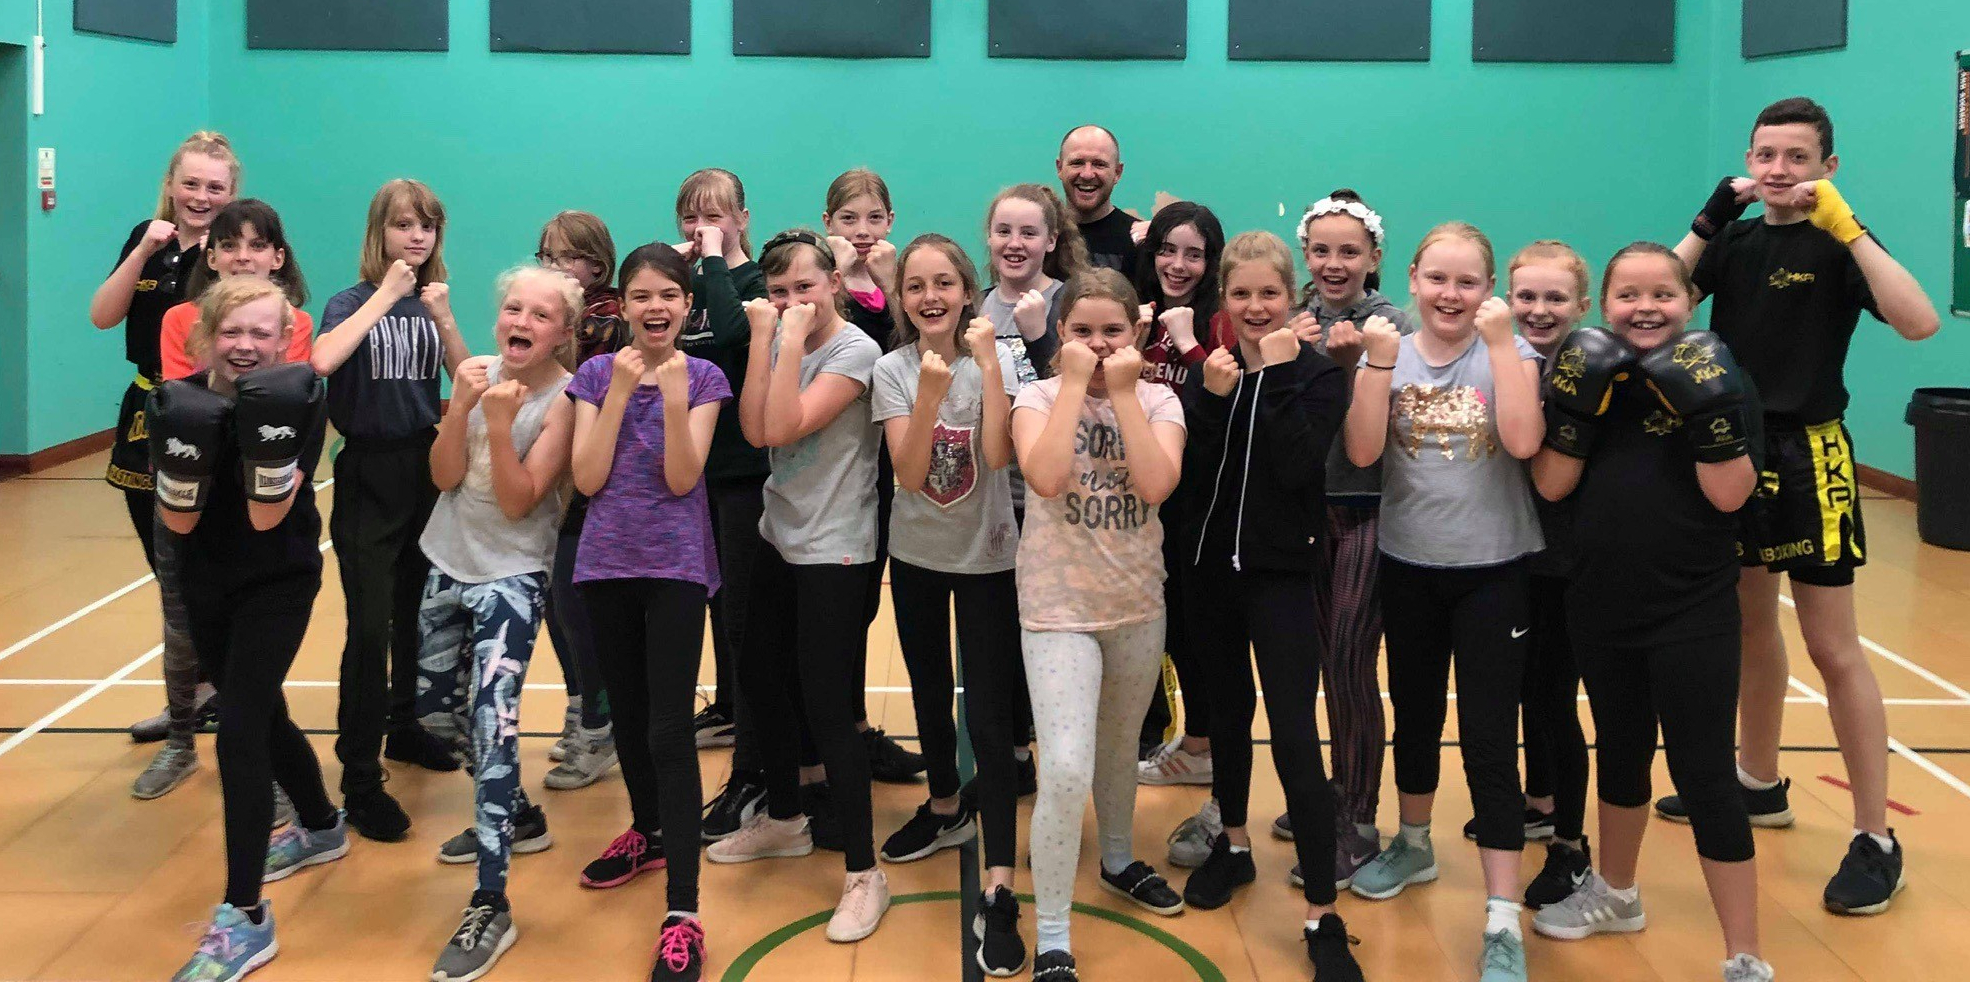 Hastings Kickboxing Academy – giving a little guidance